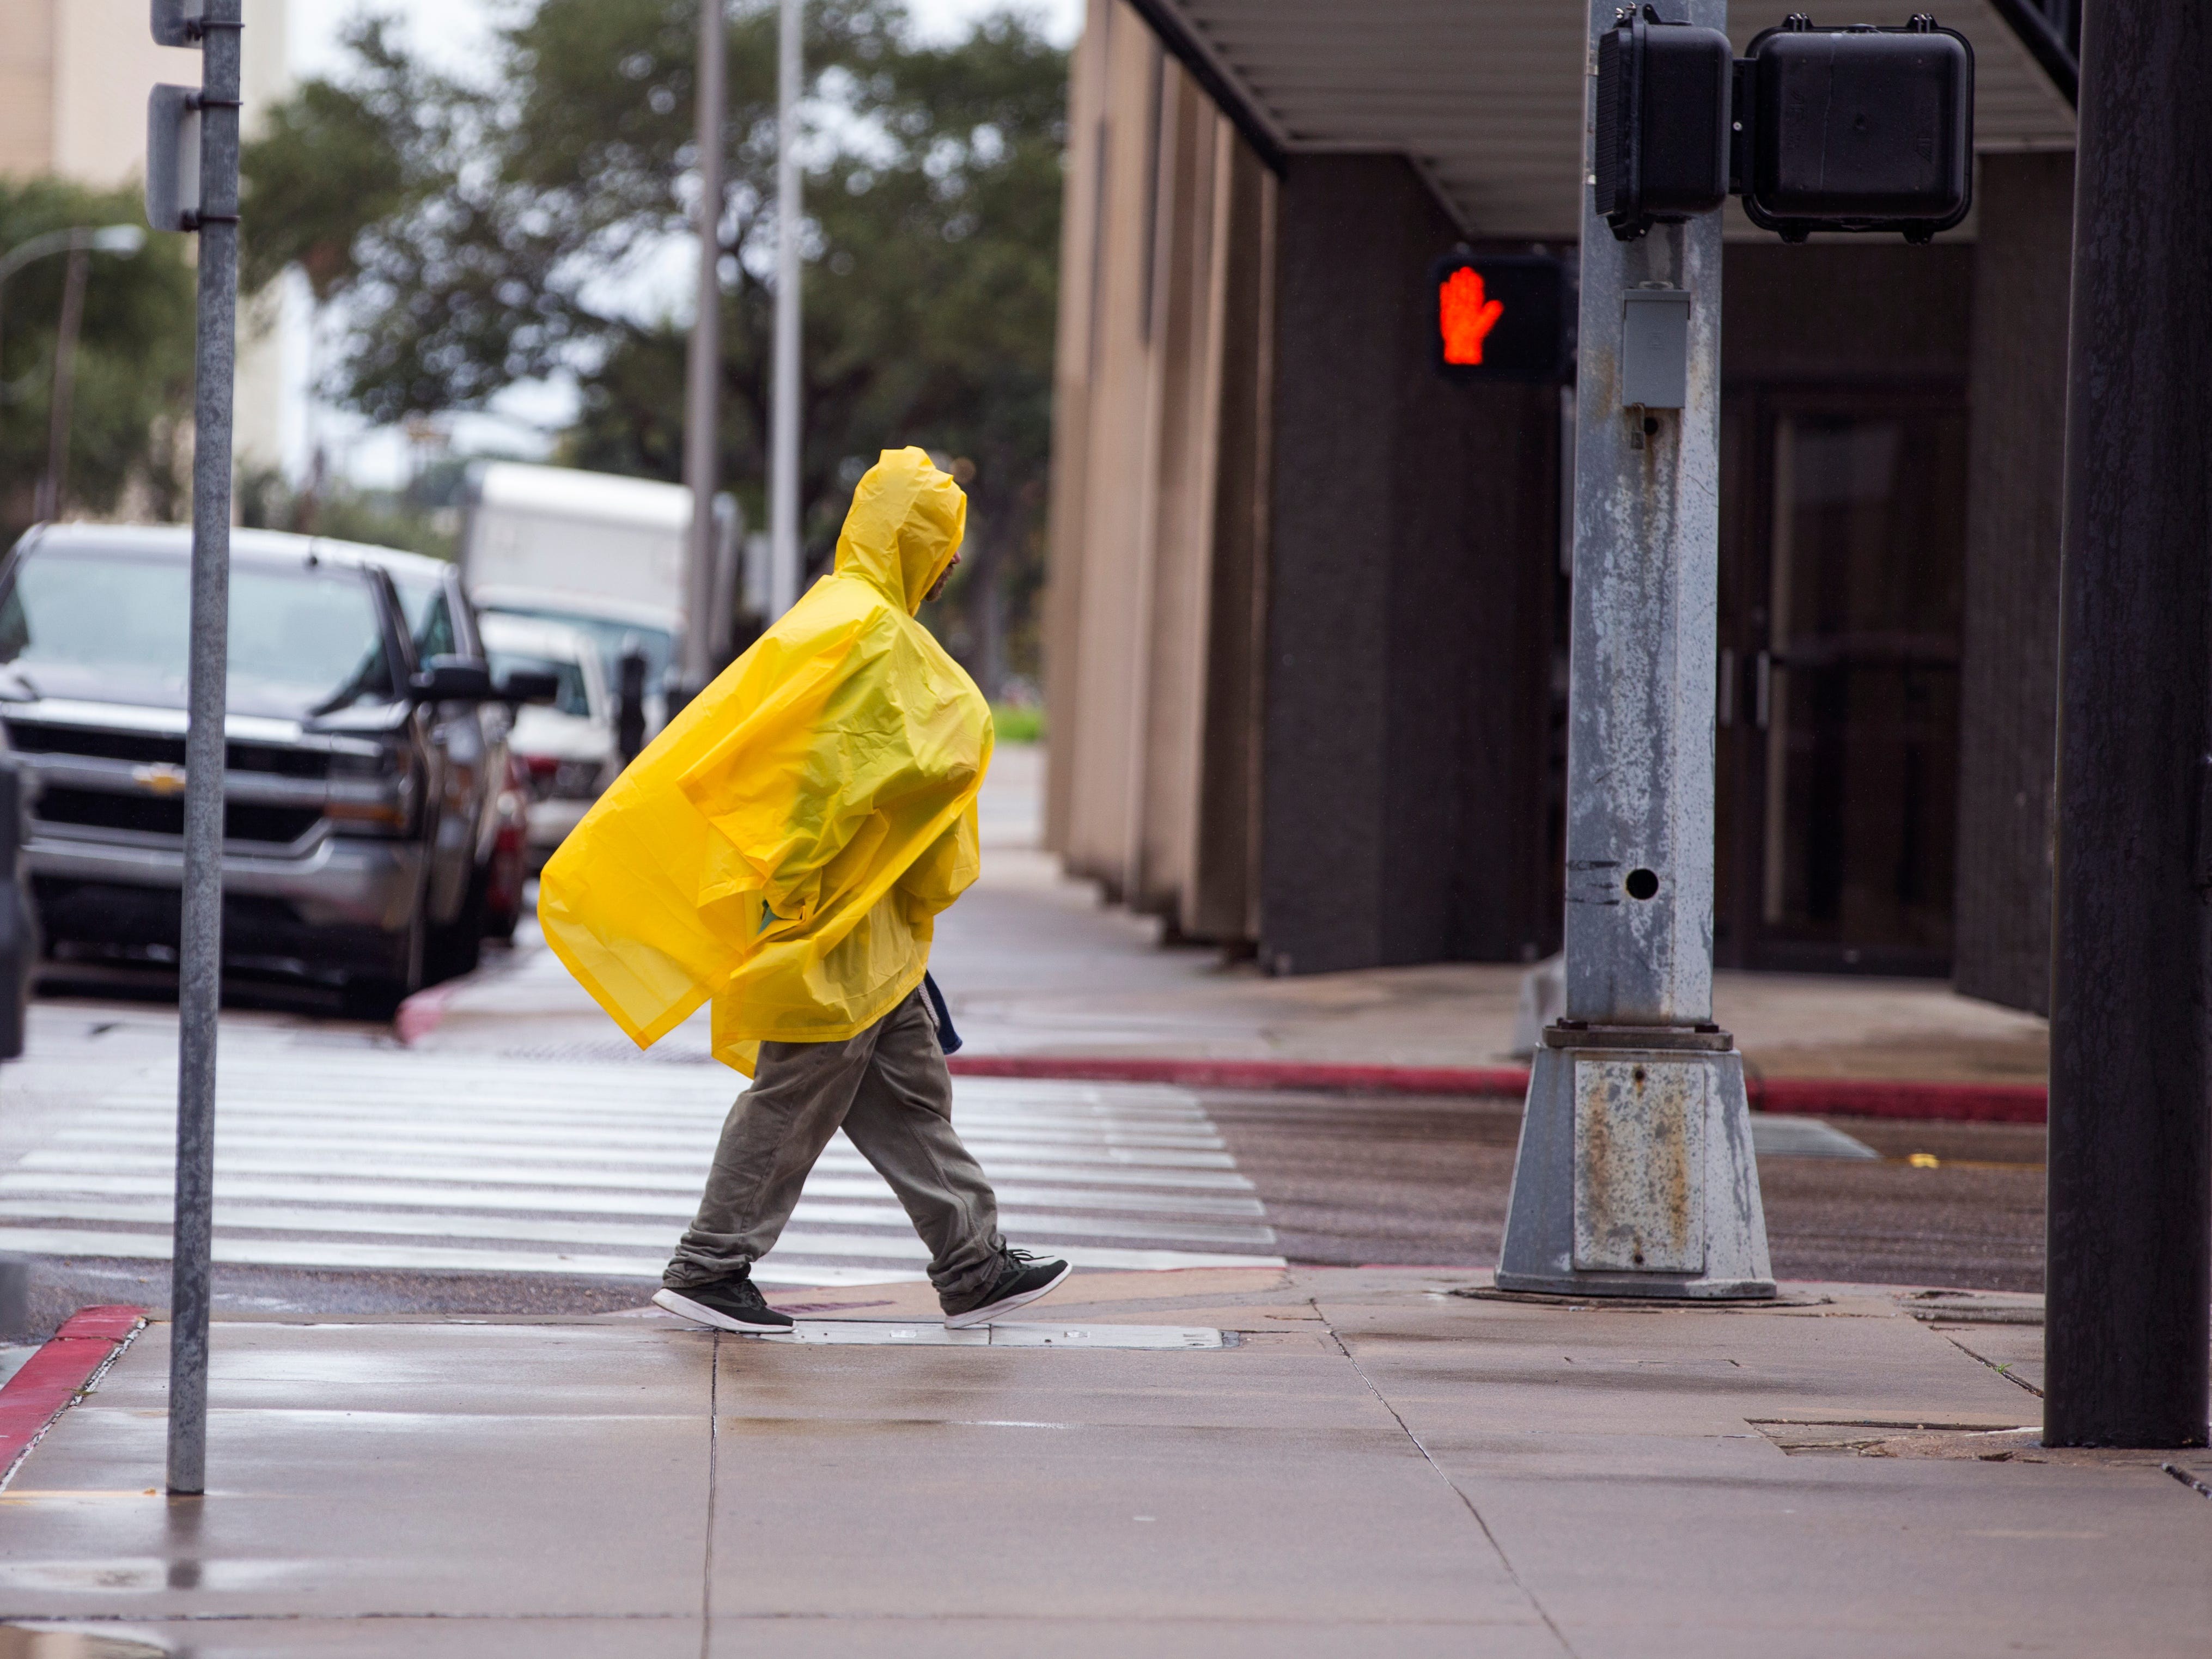 A man tries to stay dry and warm in uptown as a cold front and rain moved through the area on Monday, October 15, 2018.